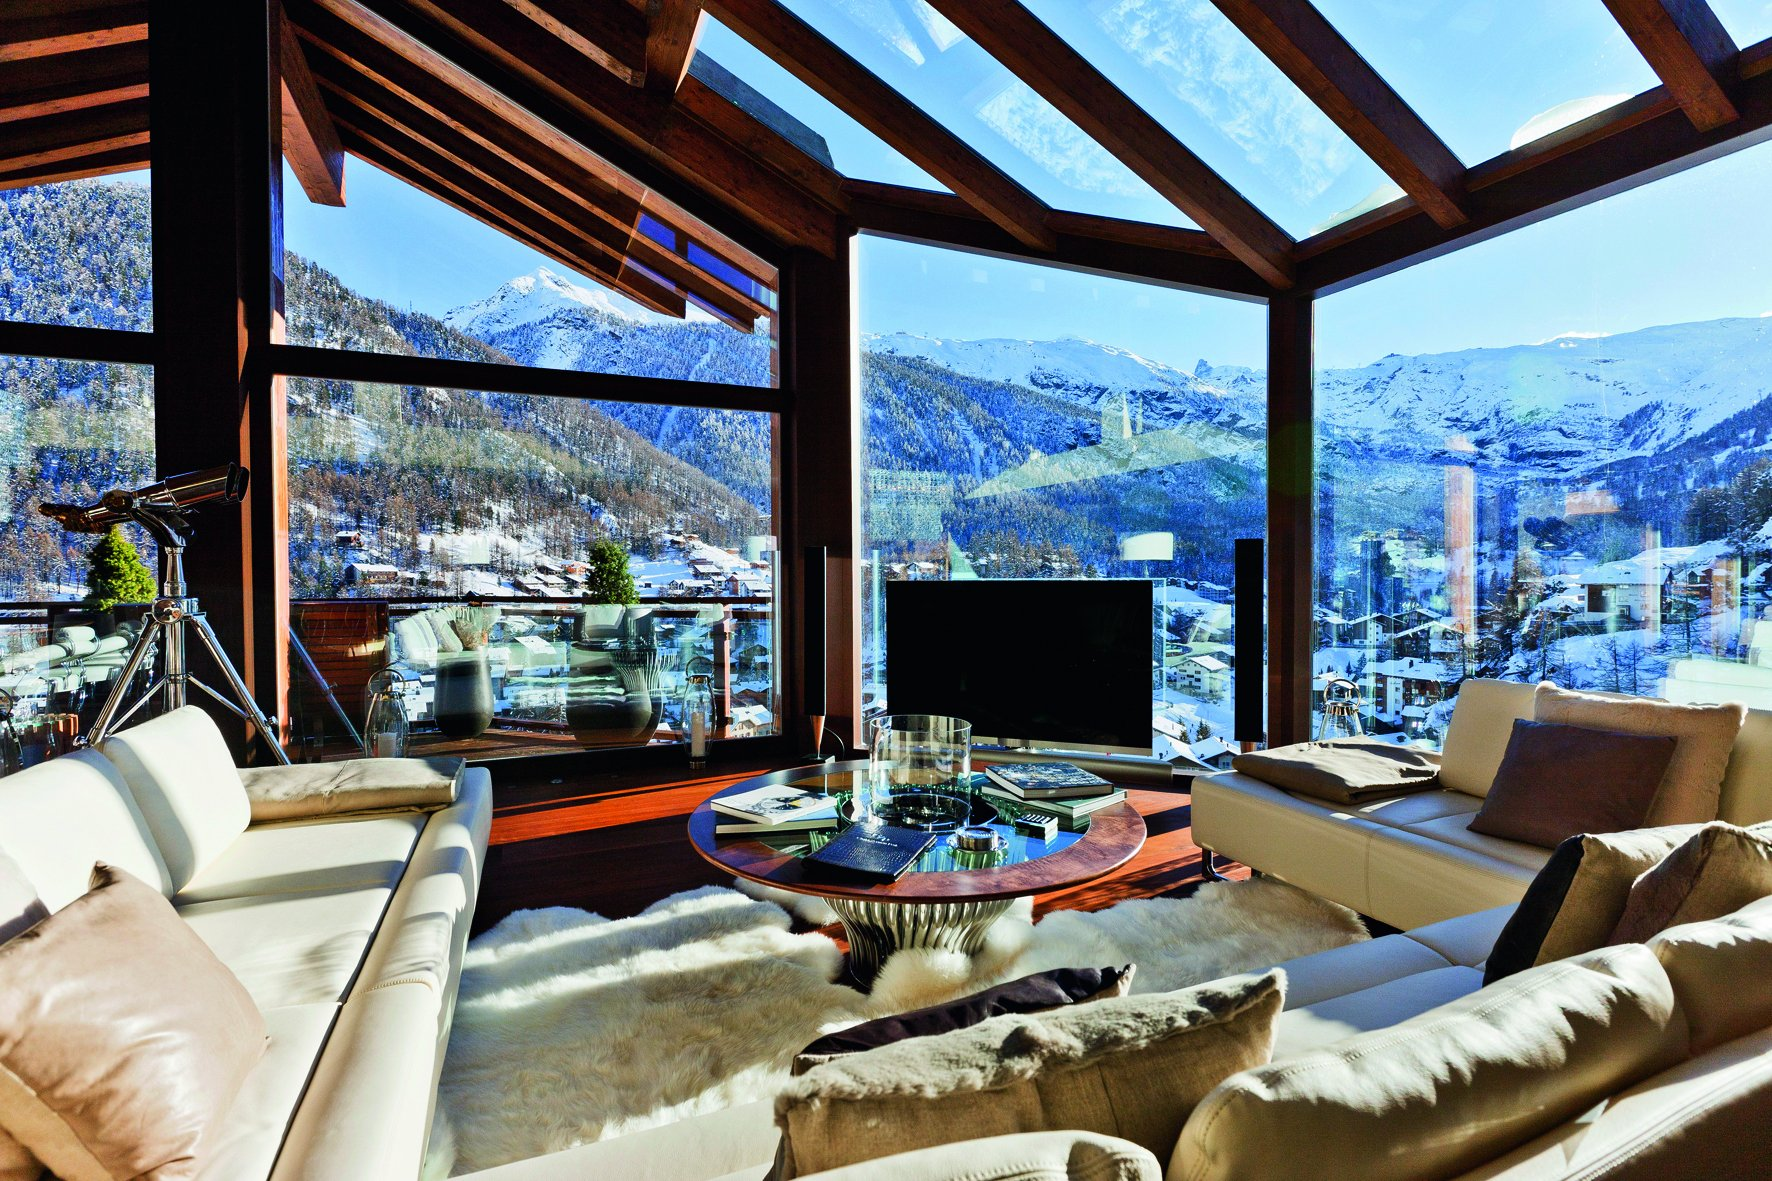 Interior living room in the style of a chalet, photo